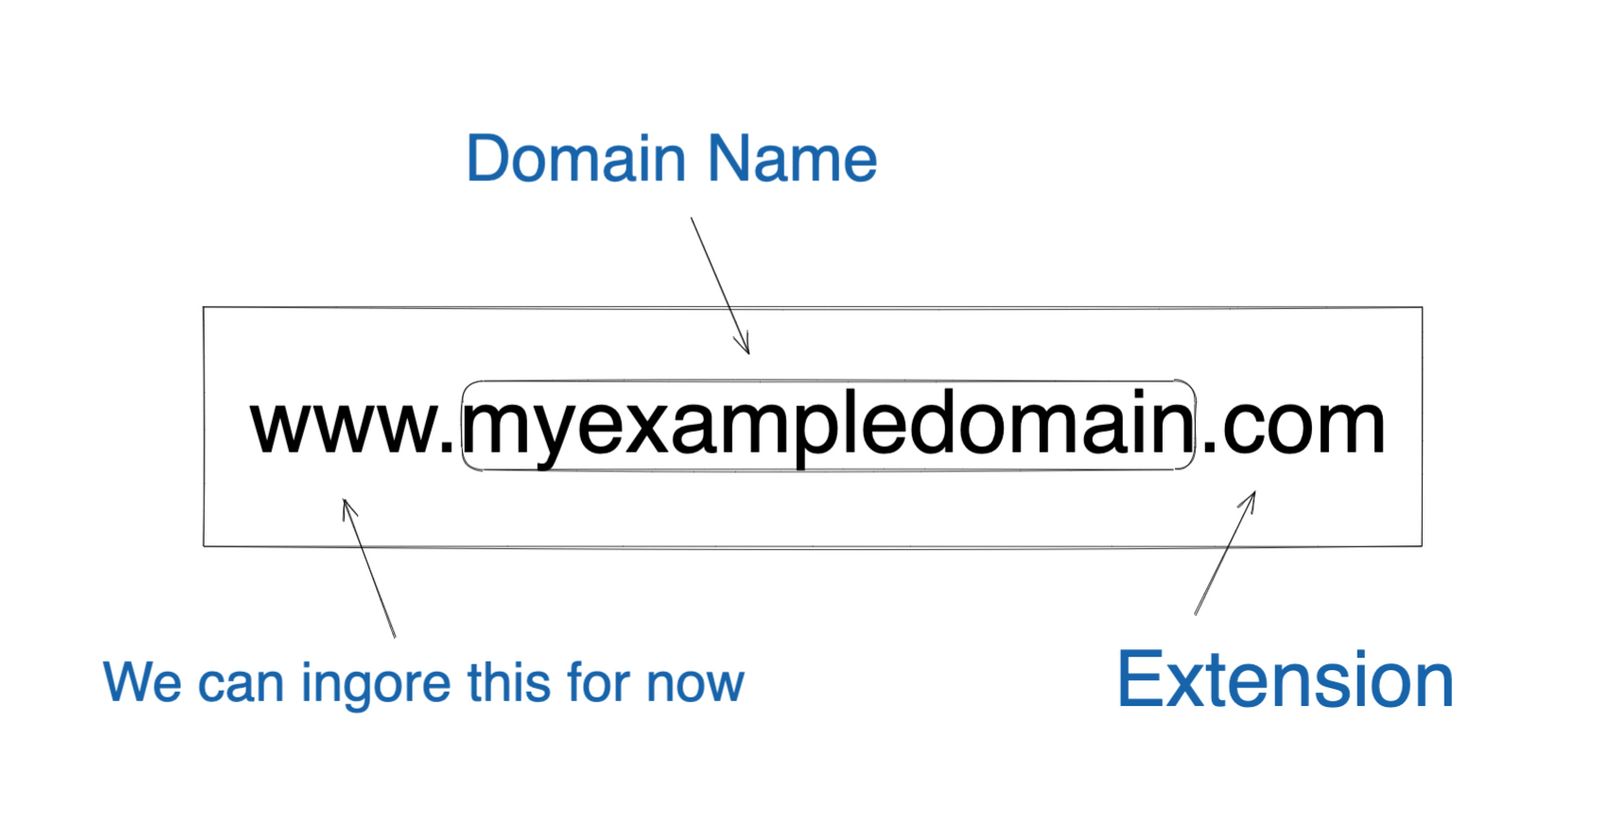 Example of a domain name